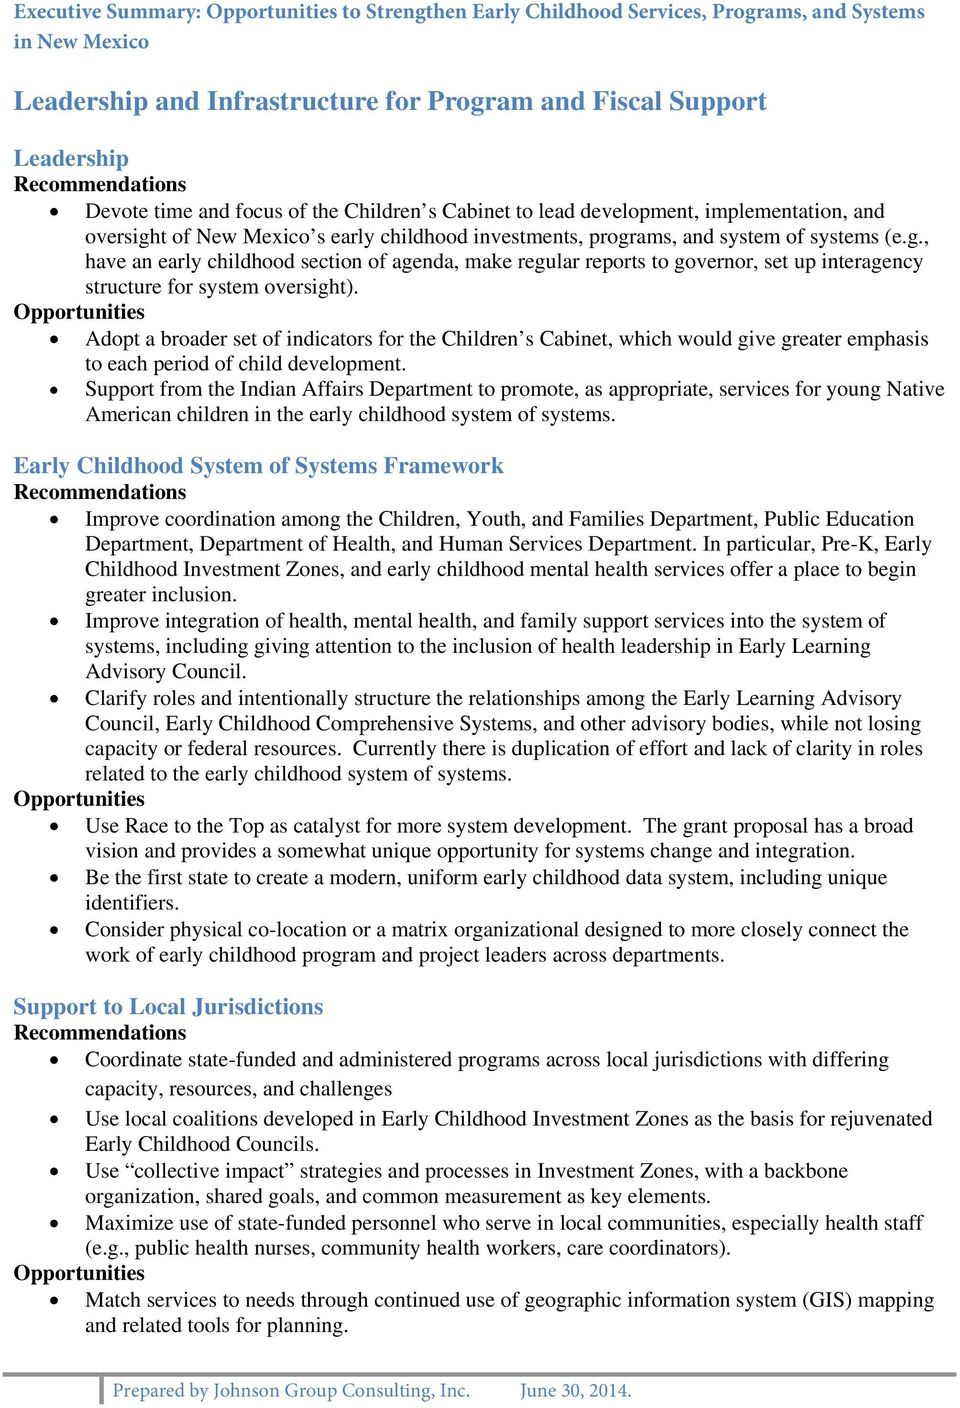 t of New Mexico s early childhood investments, programs, and system of systems (e.g., have an early childhood section of agenda, make regular reports to governor, set up interagency structure for system oversight).